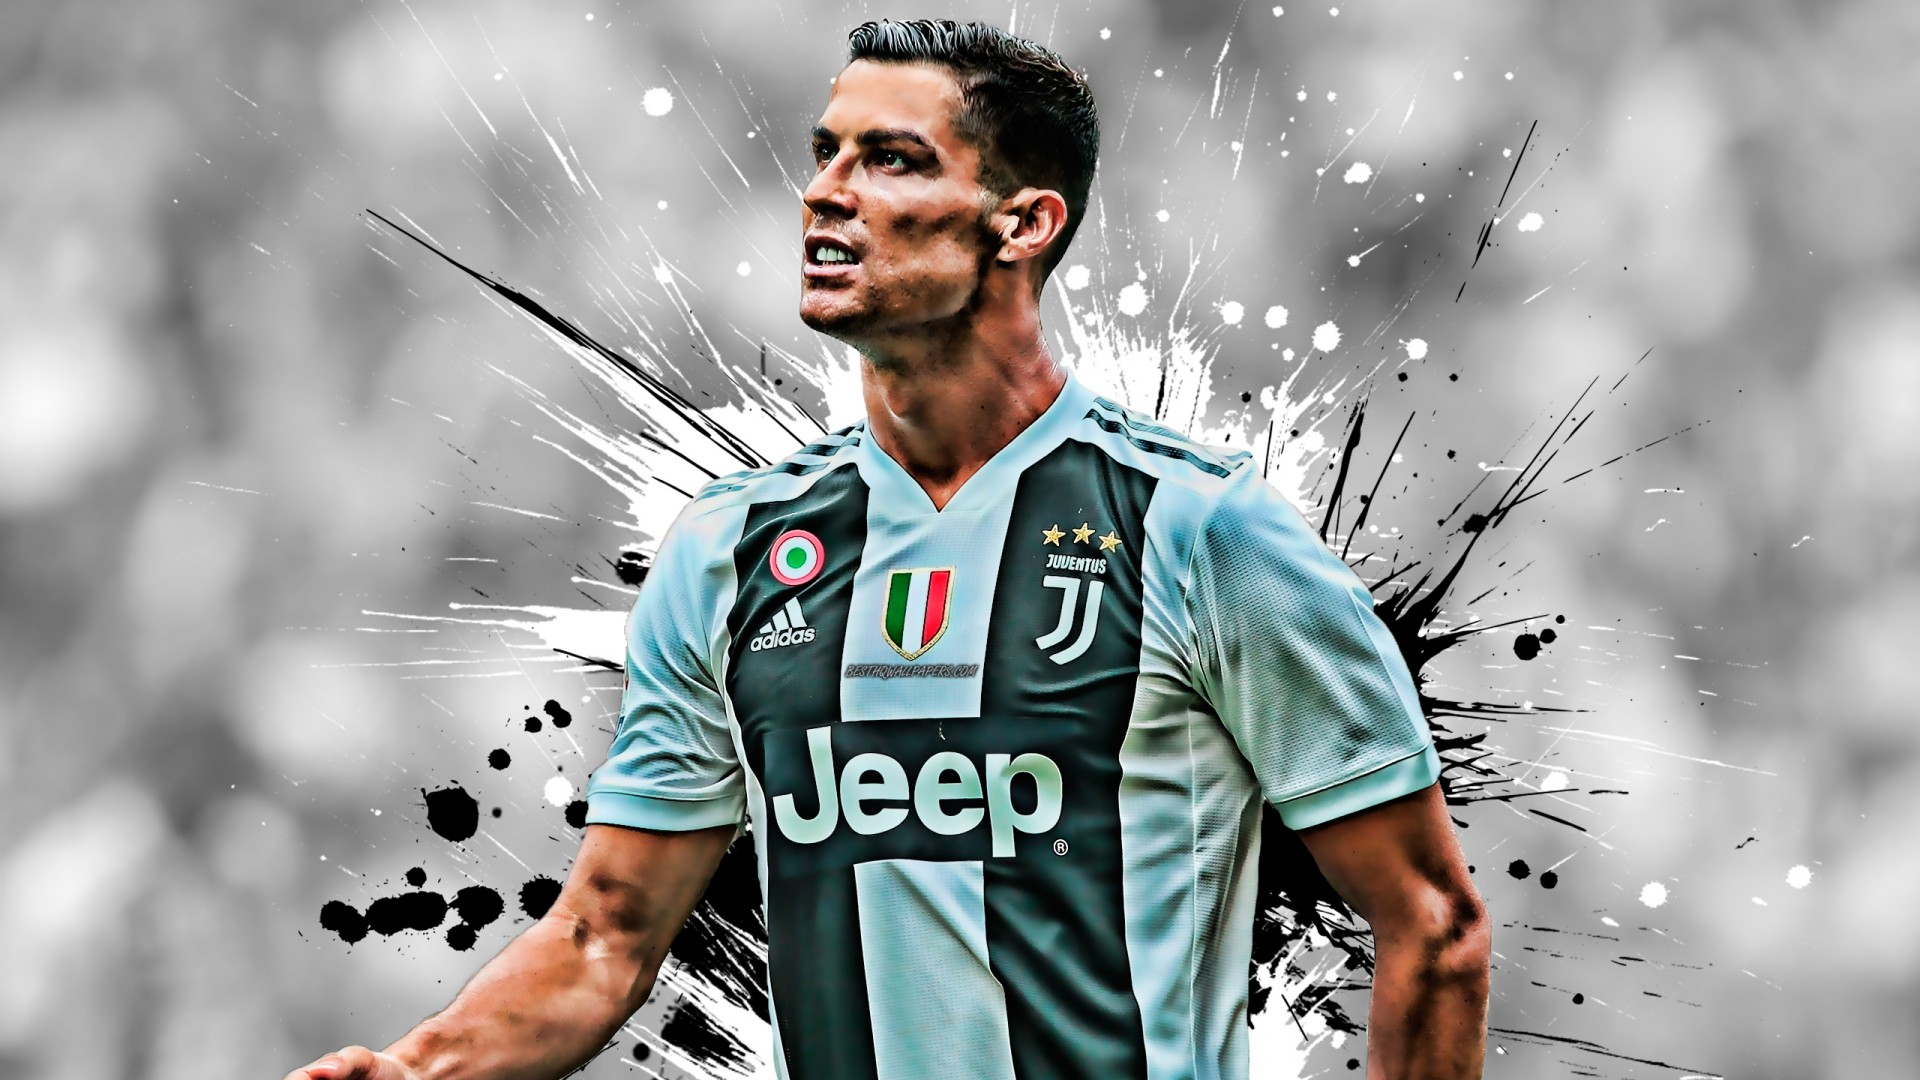 Cr7 Wallpaper Iphone X Cristiano Ronaldo Wallpapers Hd Wallpapers Id 27455